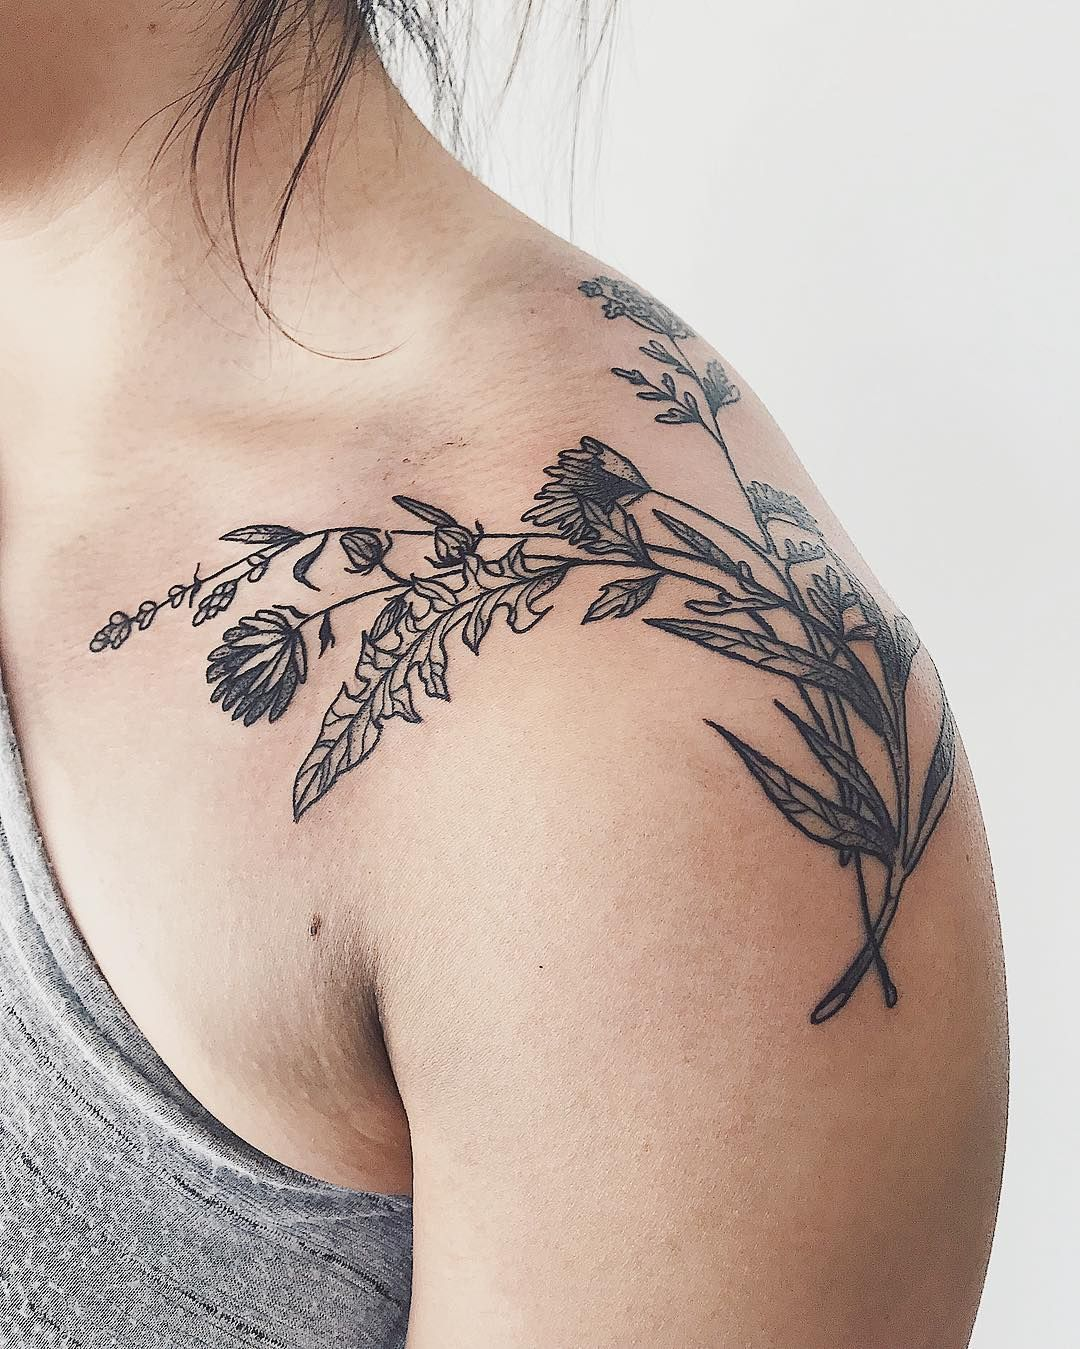 10 Popular Tattoo Placements That Look Good on Everyone - FabFitFun